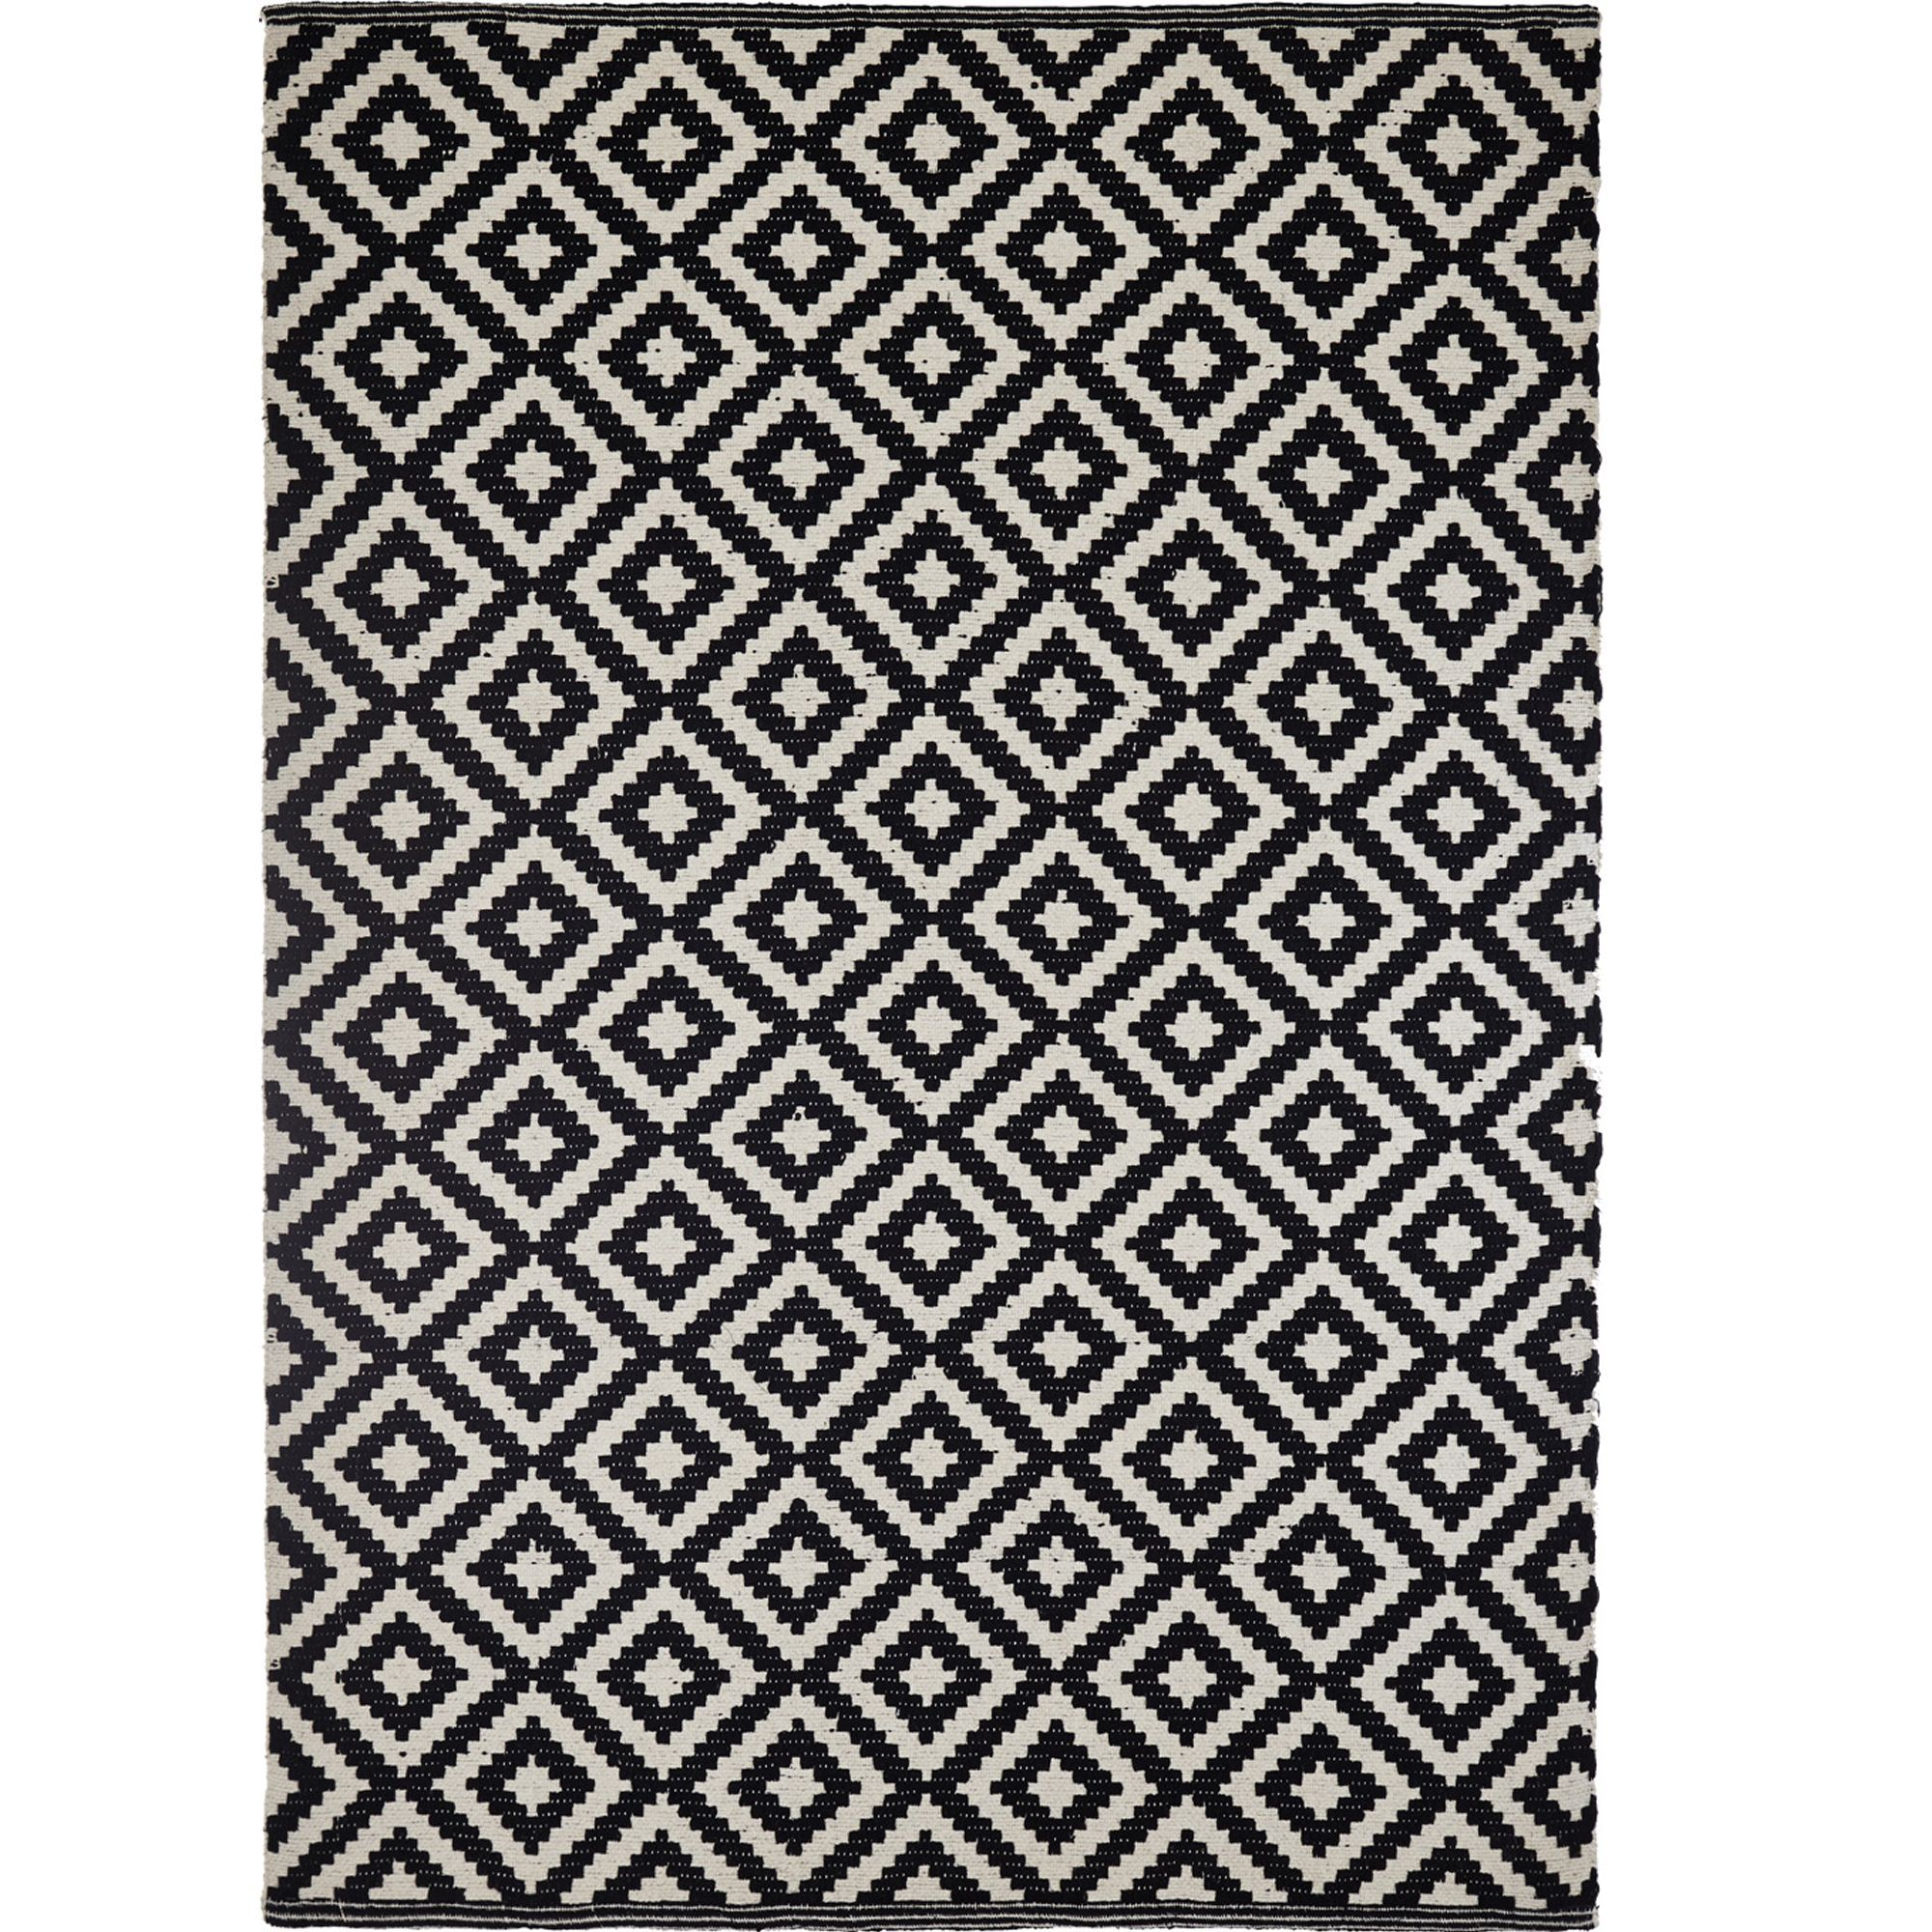 Colours Harrietta Black White Geometric Rug L 0 23m W 16 M Departments Diy At B Q